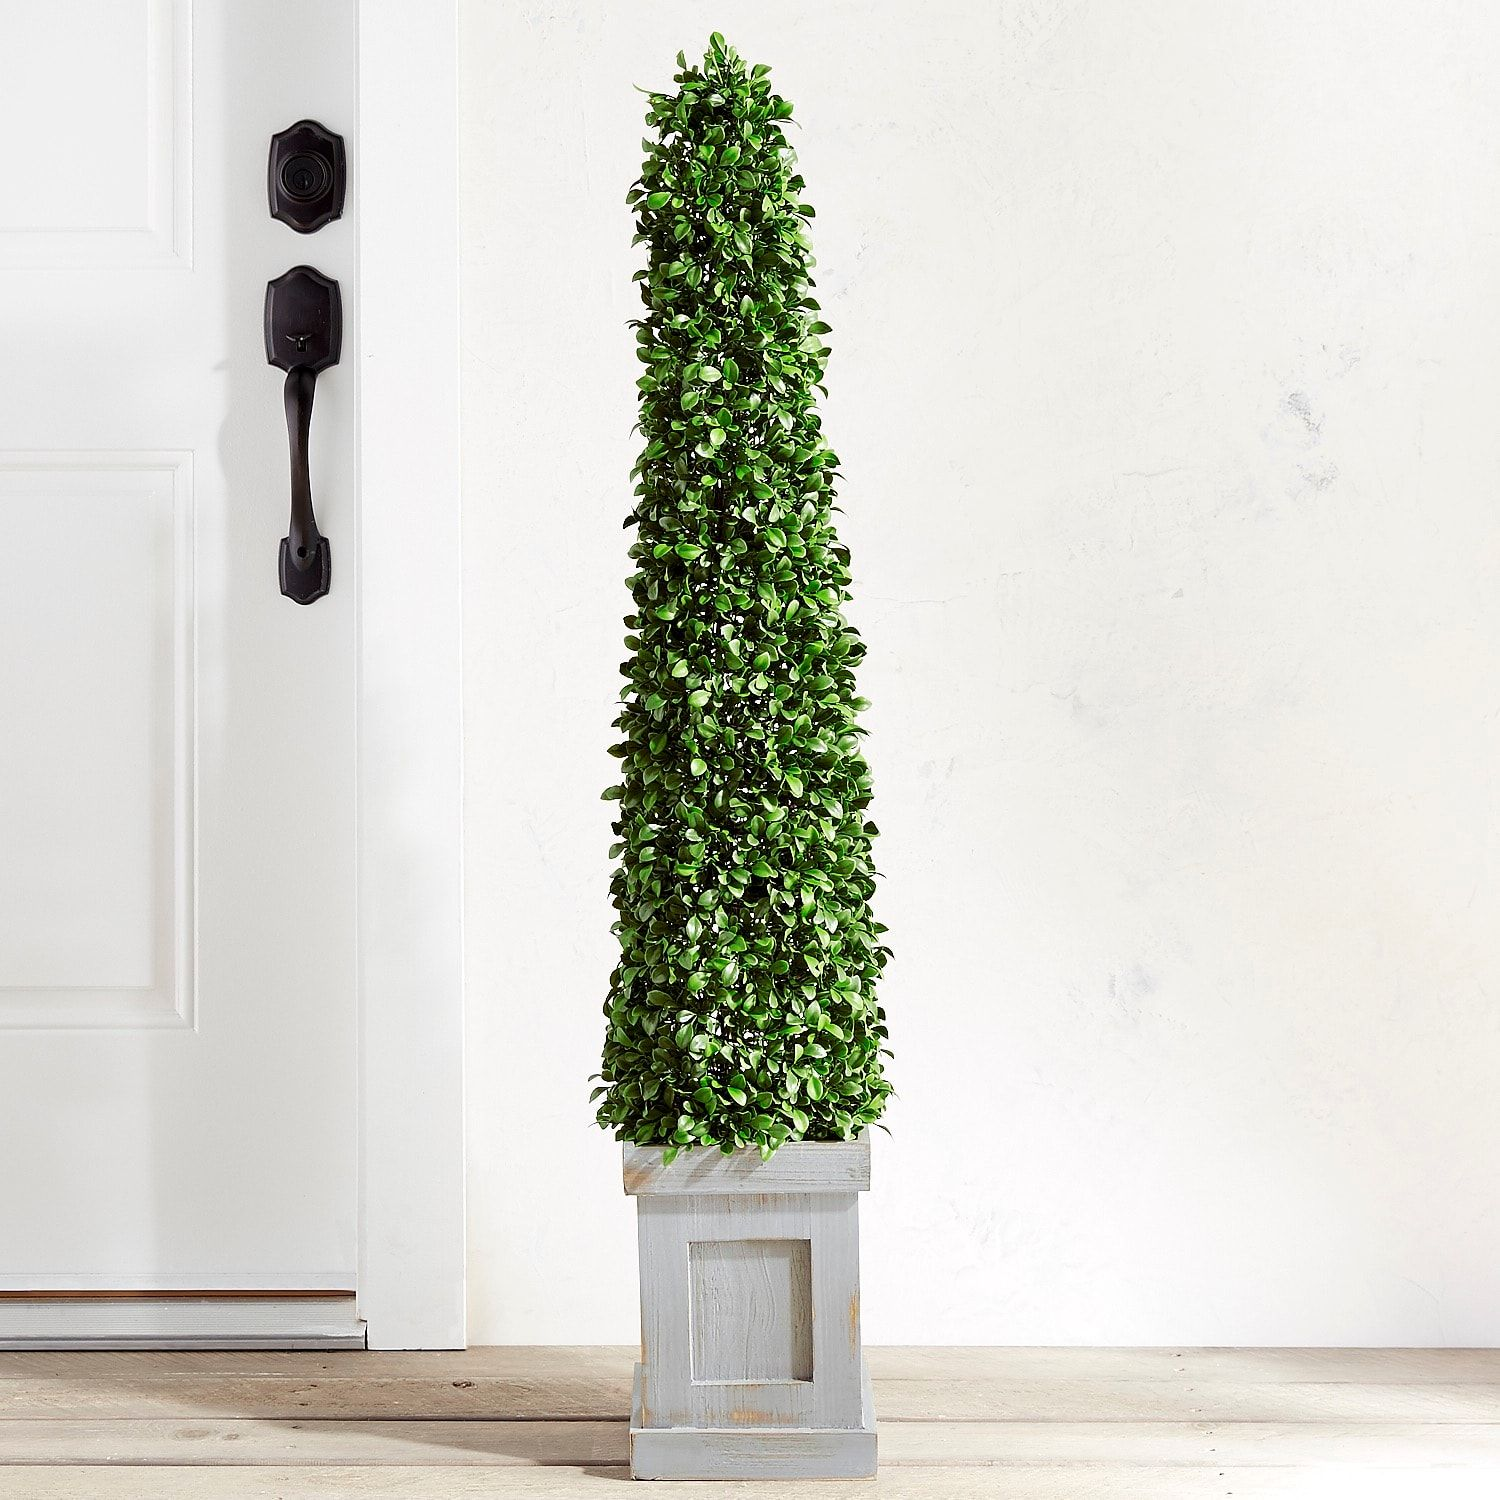 Outdoor Faux Boxwood Cone 48 Topiary Faux Outdoor Plants Artificial Trees Boxwood Garden